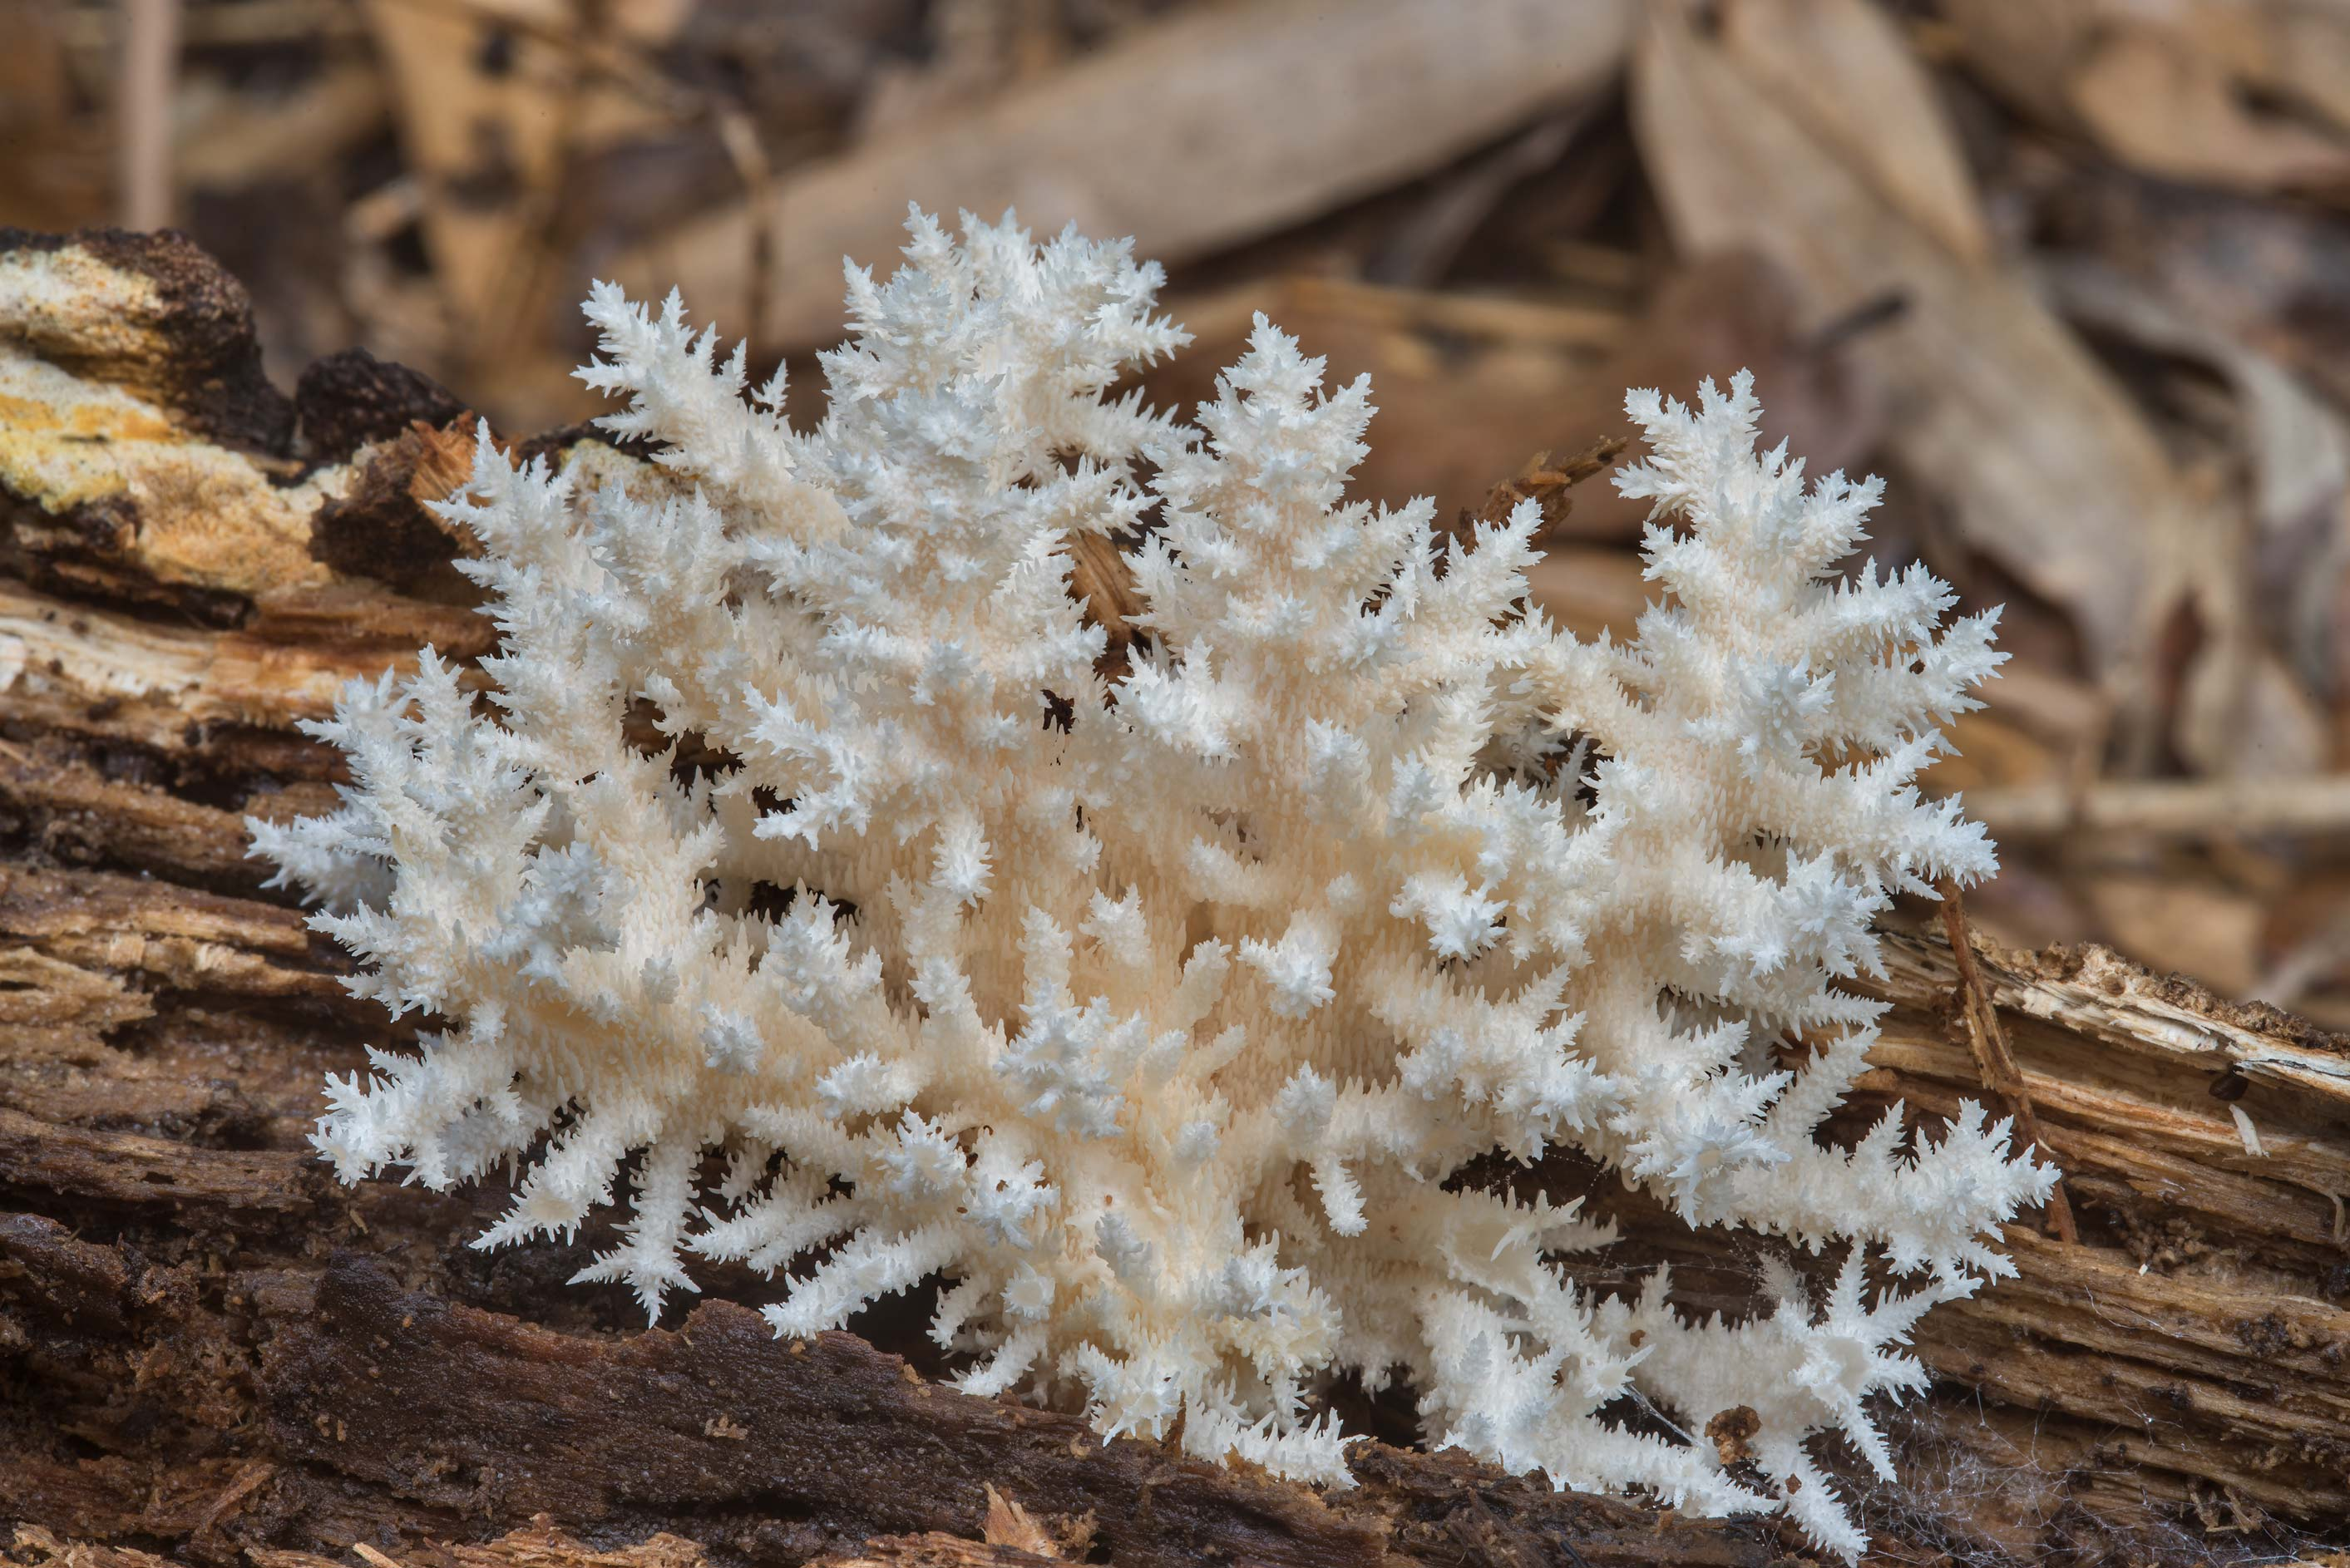 Coral tooth mushroom (Hericium coralloides) on a...in Hensel Park. College Station, Texas